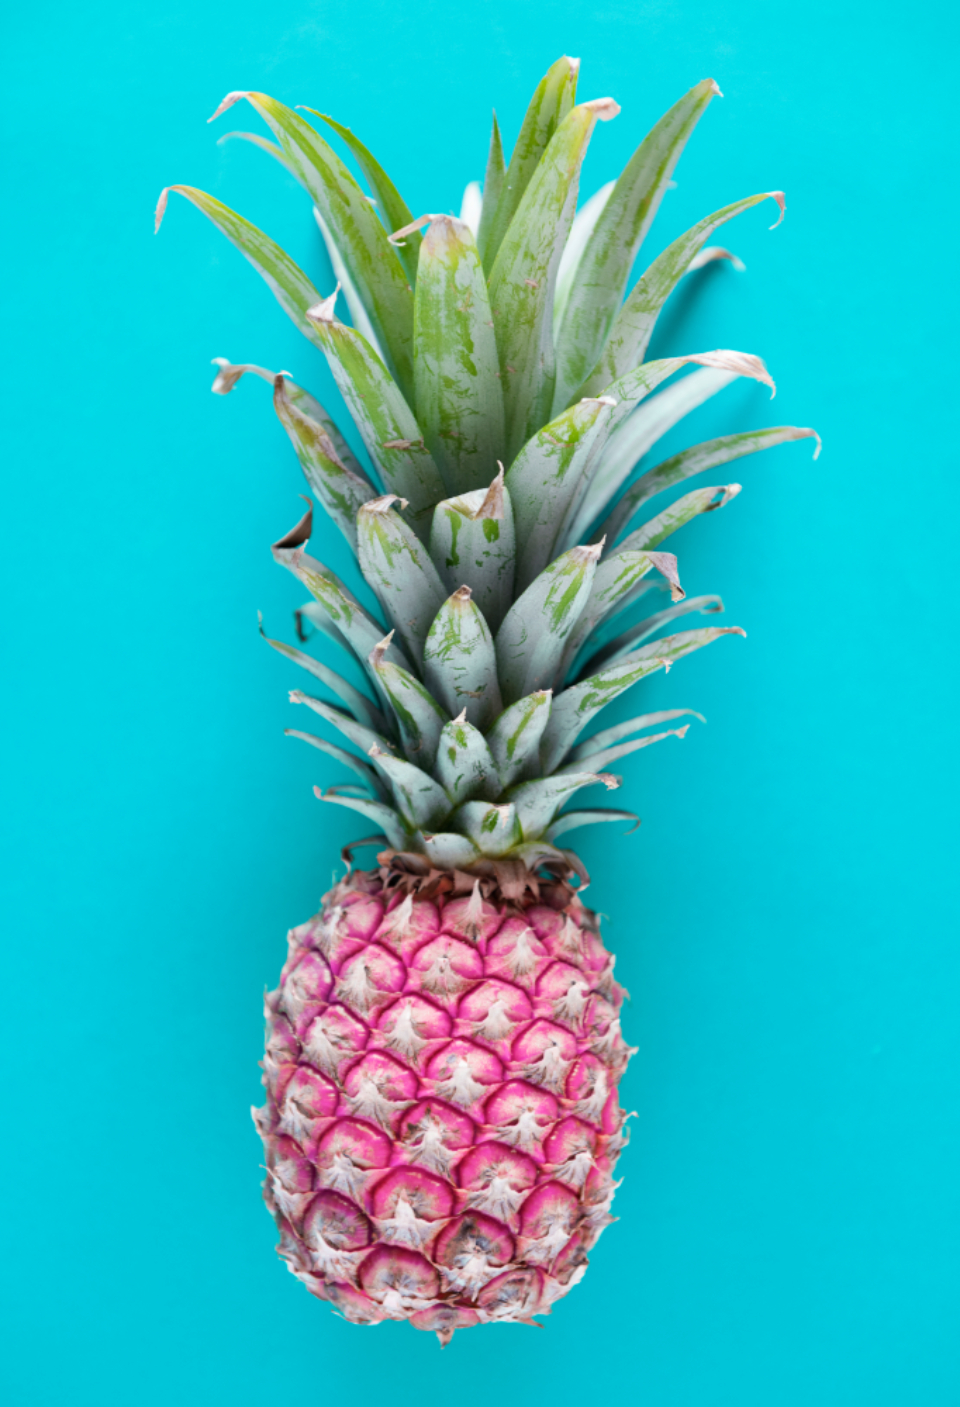 blue background food fresh freshness fruit healthy ingredient isolated juicy natural nature nutrition nutritious organic pattern pineapple raw refreshment ripe season s